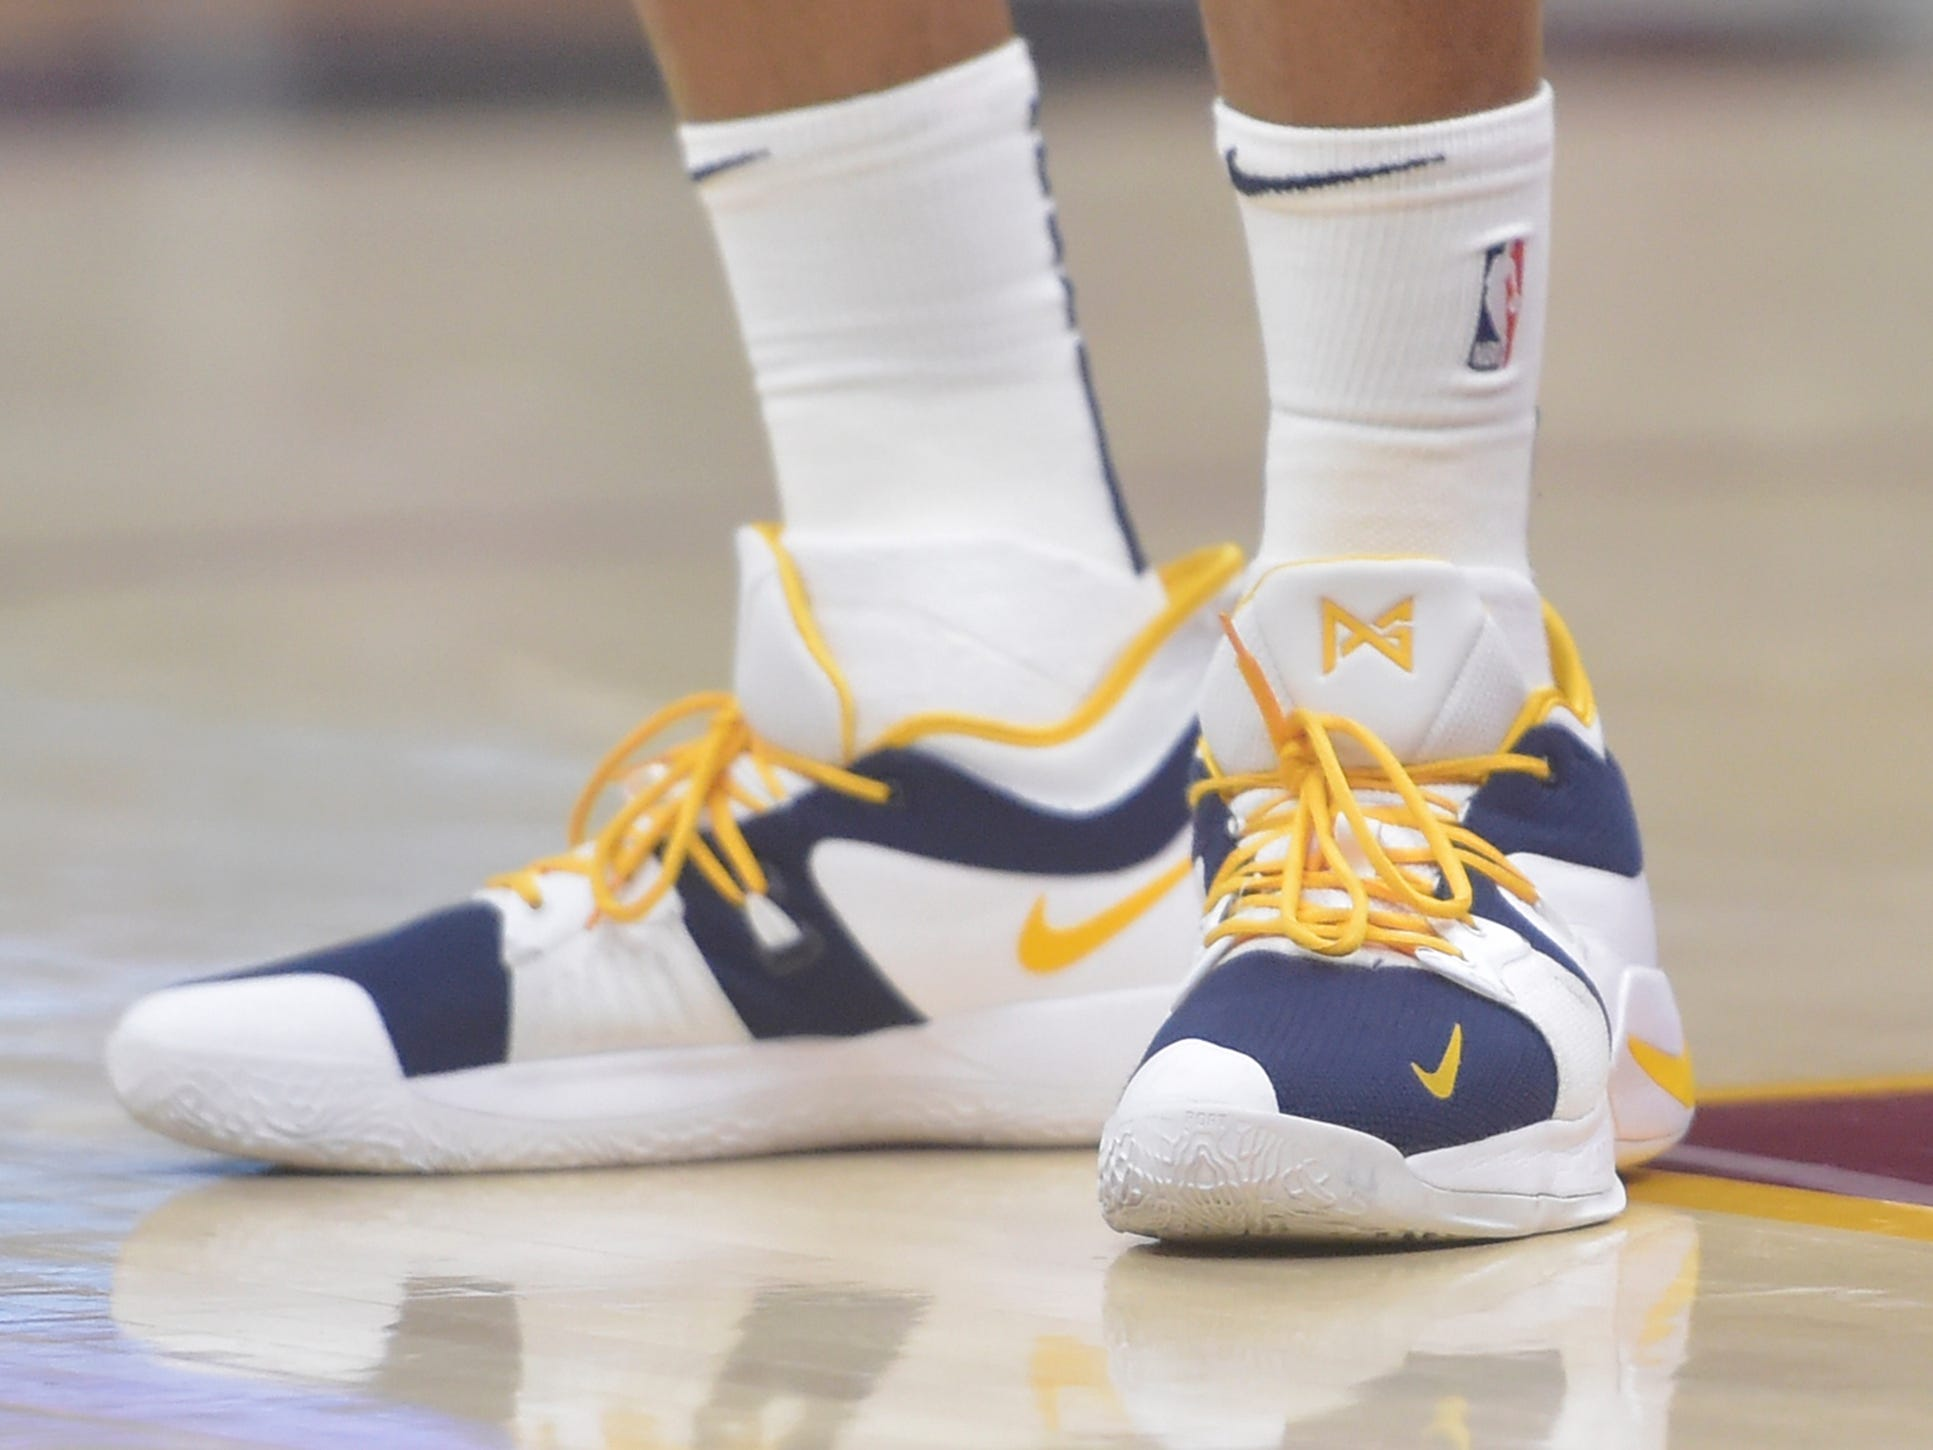 Jan 8, 2019; Cleveland, OH, USA; General view of the shoes worn by Indiana Pacers forward Thaddeus Young (21) during a game against the Cleveland Cavaliers at Quicken Loans Arena. Mandatory Credit: David Richard-USA TODAY Sports